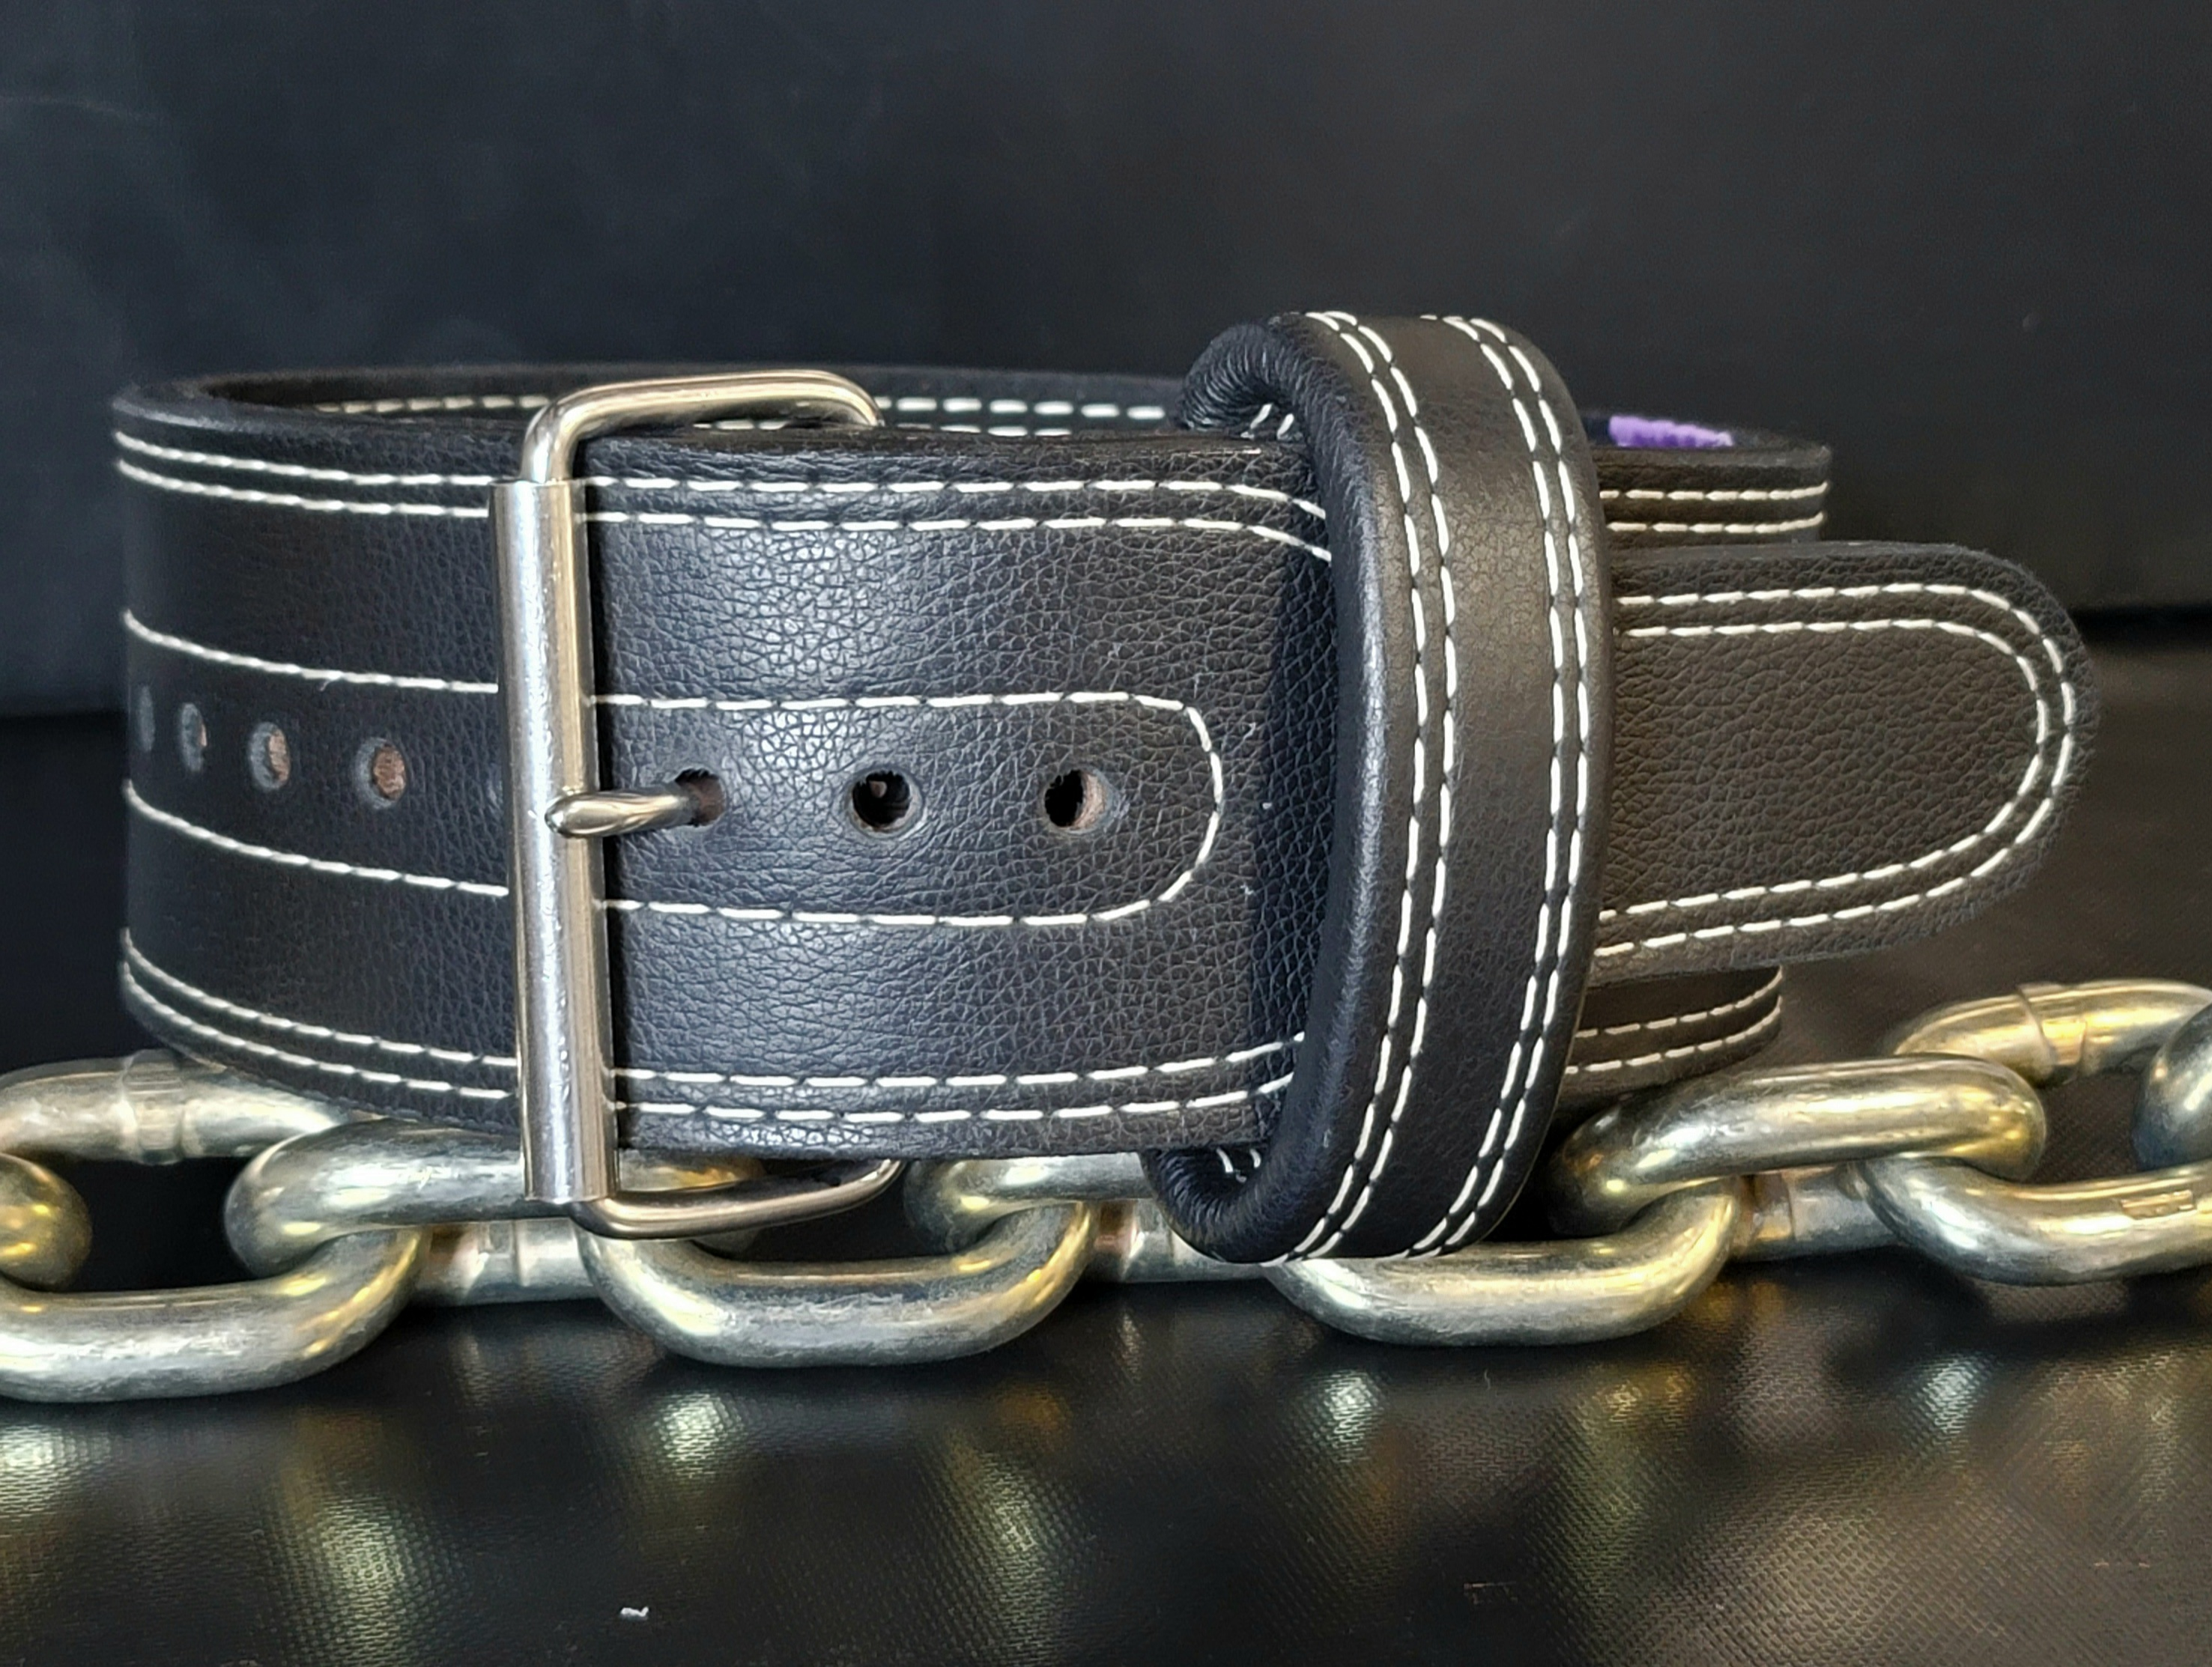 Brahma Finished Leather Prong Belt - Special Purchase